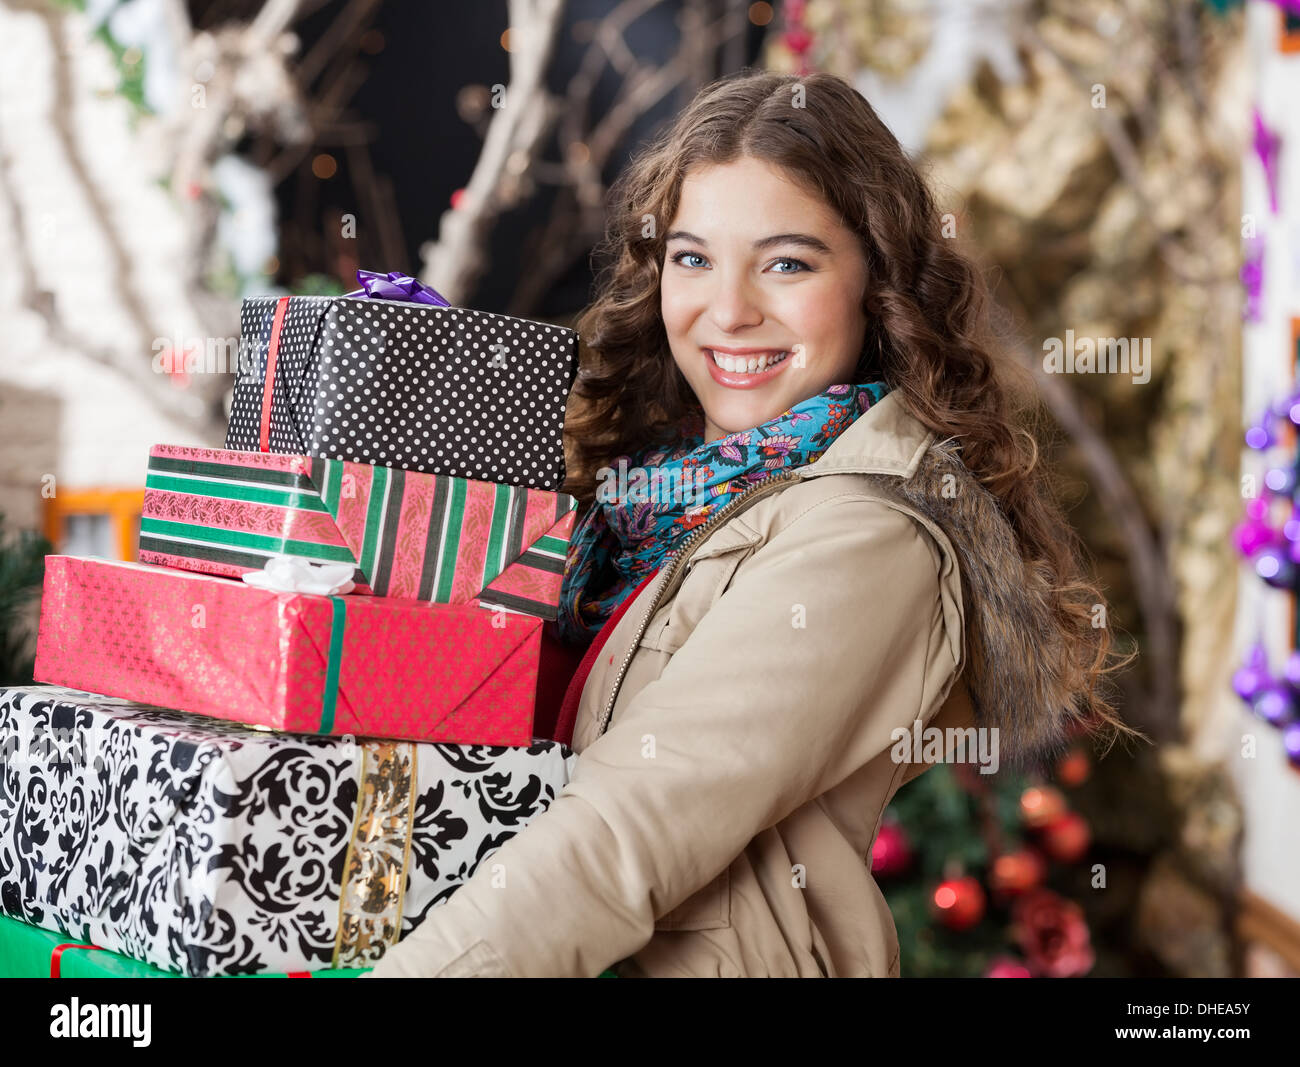 Woman Carrying Stacked Christmas Gifts In Store - Stock Image